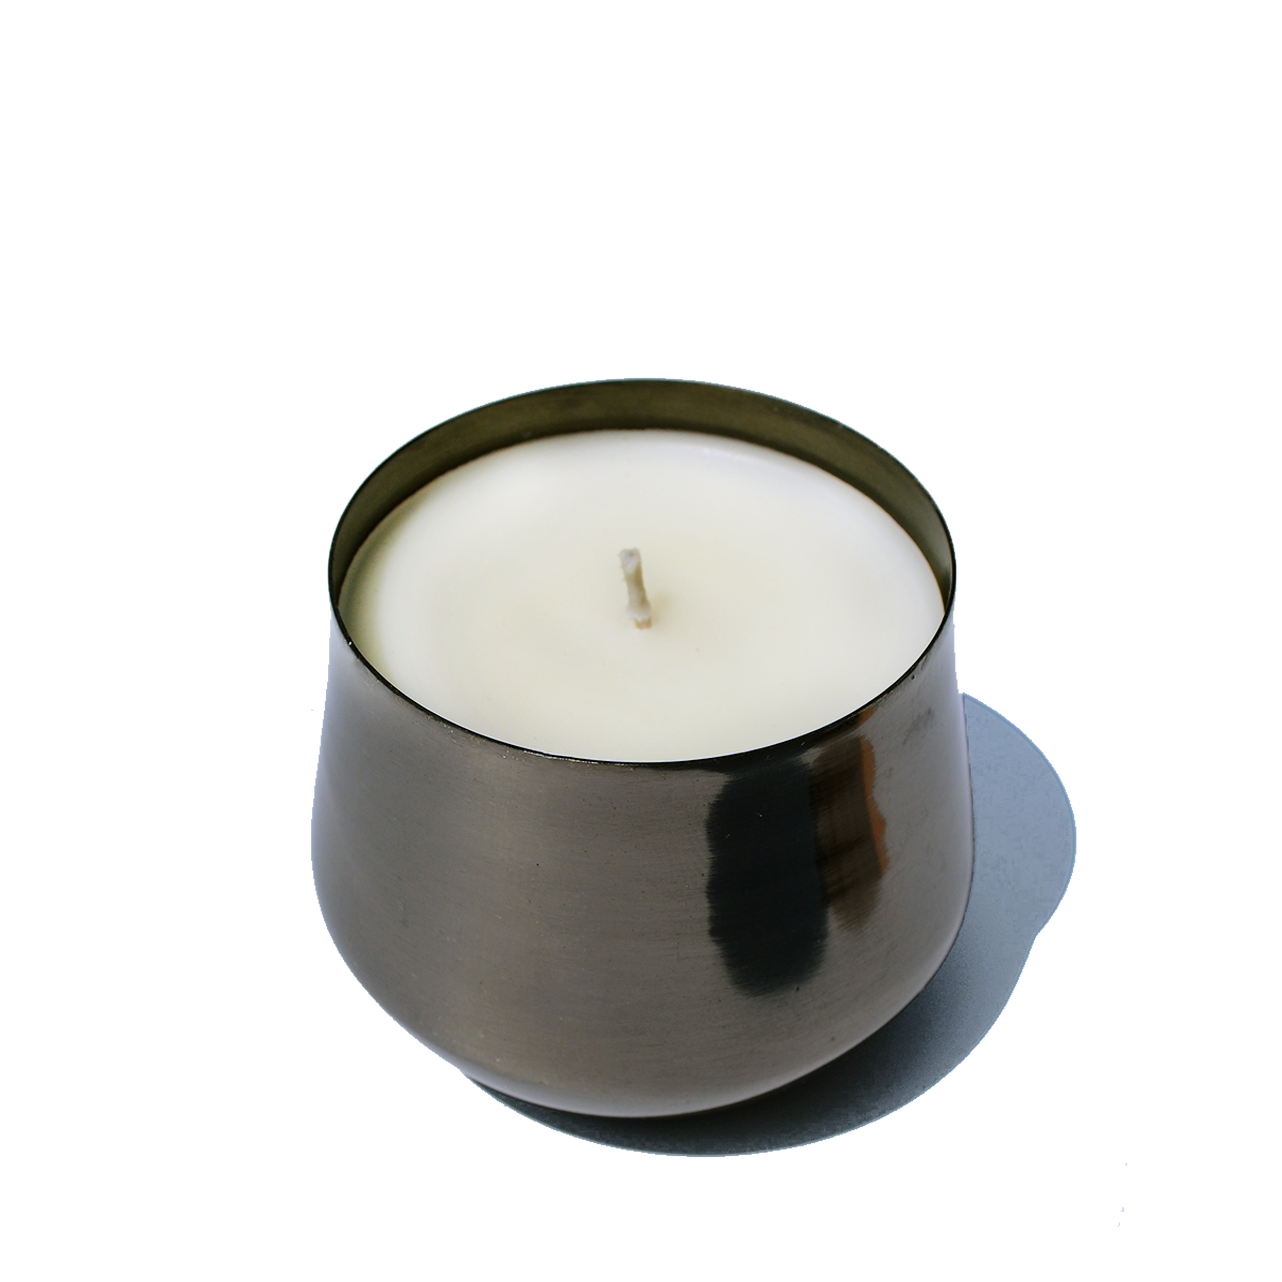 Blackberry Absinthe Talisman Candle in Gunmetal-Home - Decor - Candles - Holiday-ILLUME-Peccadilly